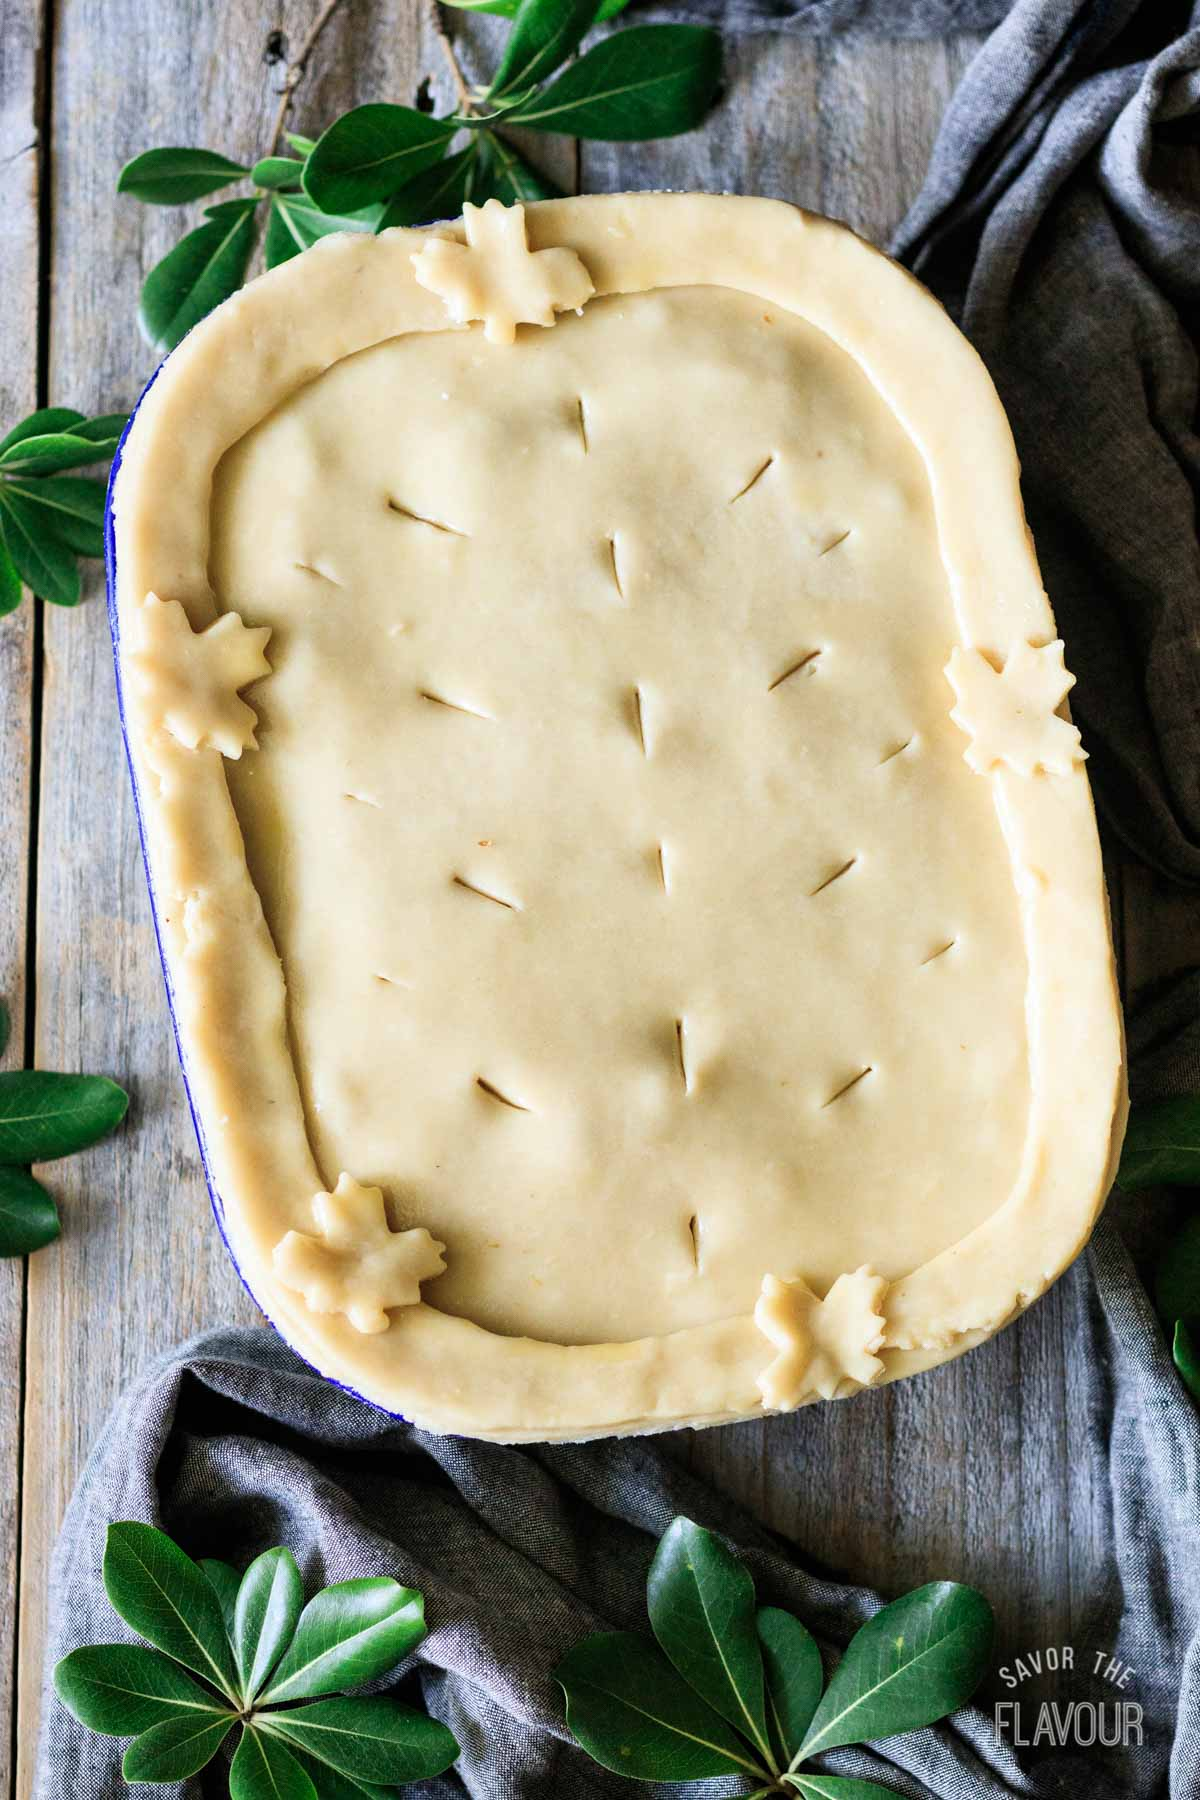 How to Make Steak and Ale Pie Recipe | Savor the Flavour